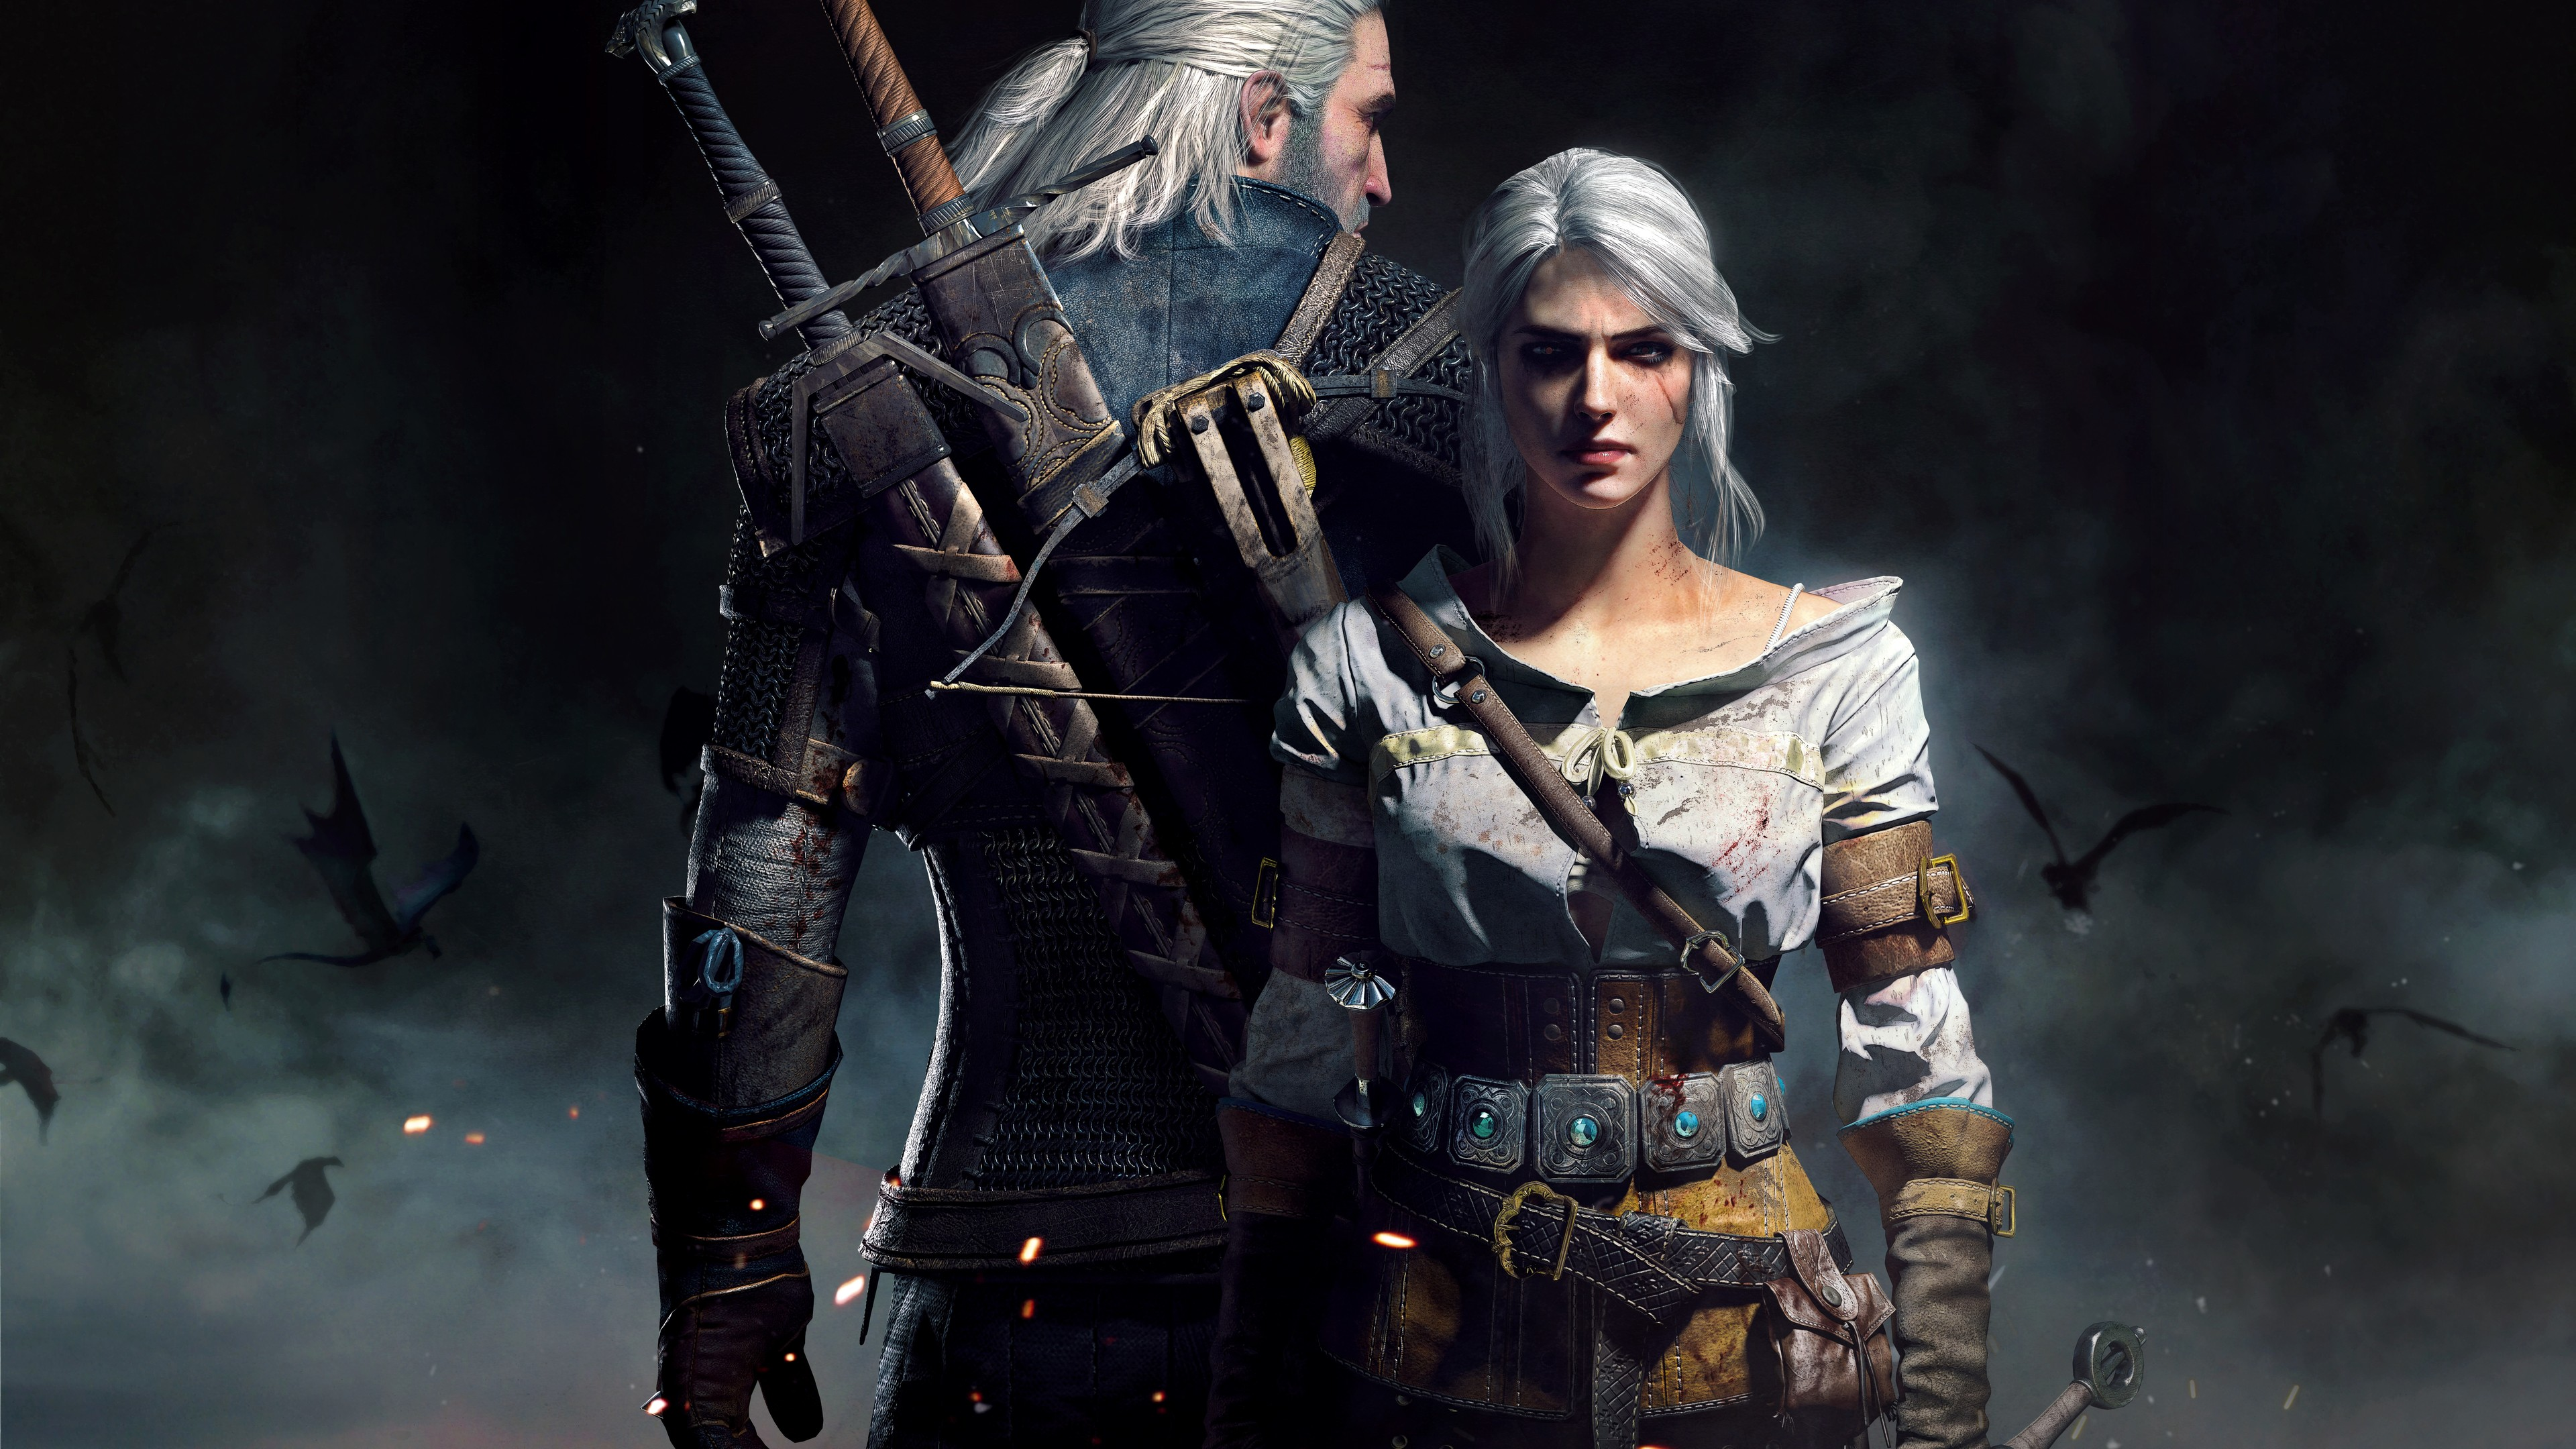 the witcher 3 1535966344 - The Witcher 3 - xbox games wallpapers, the witcher 3 wallpapers, ps4 wallpapers, games wallpapers